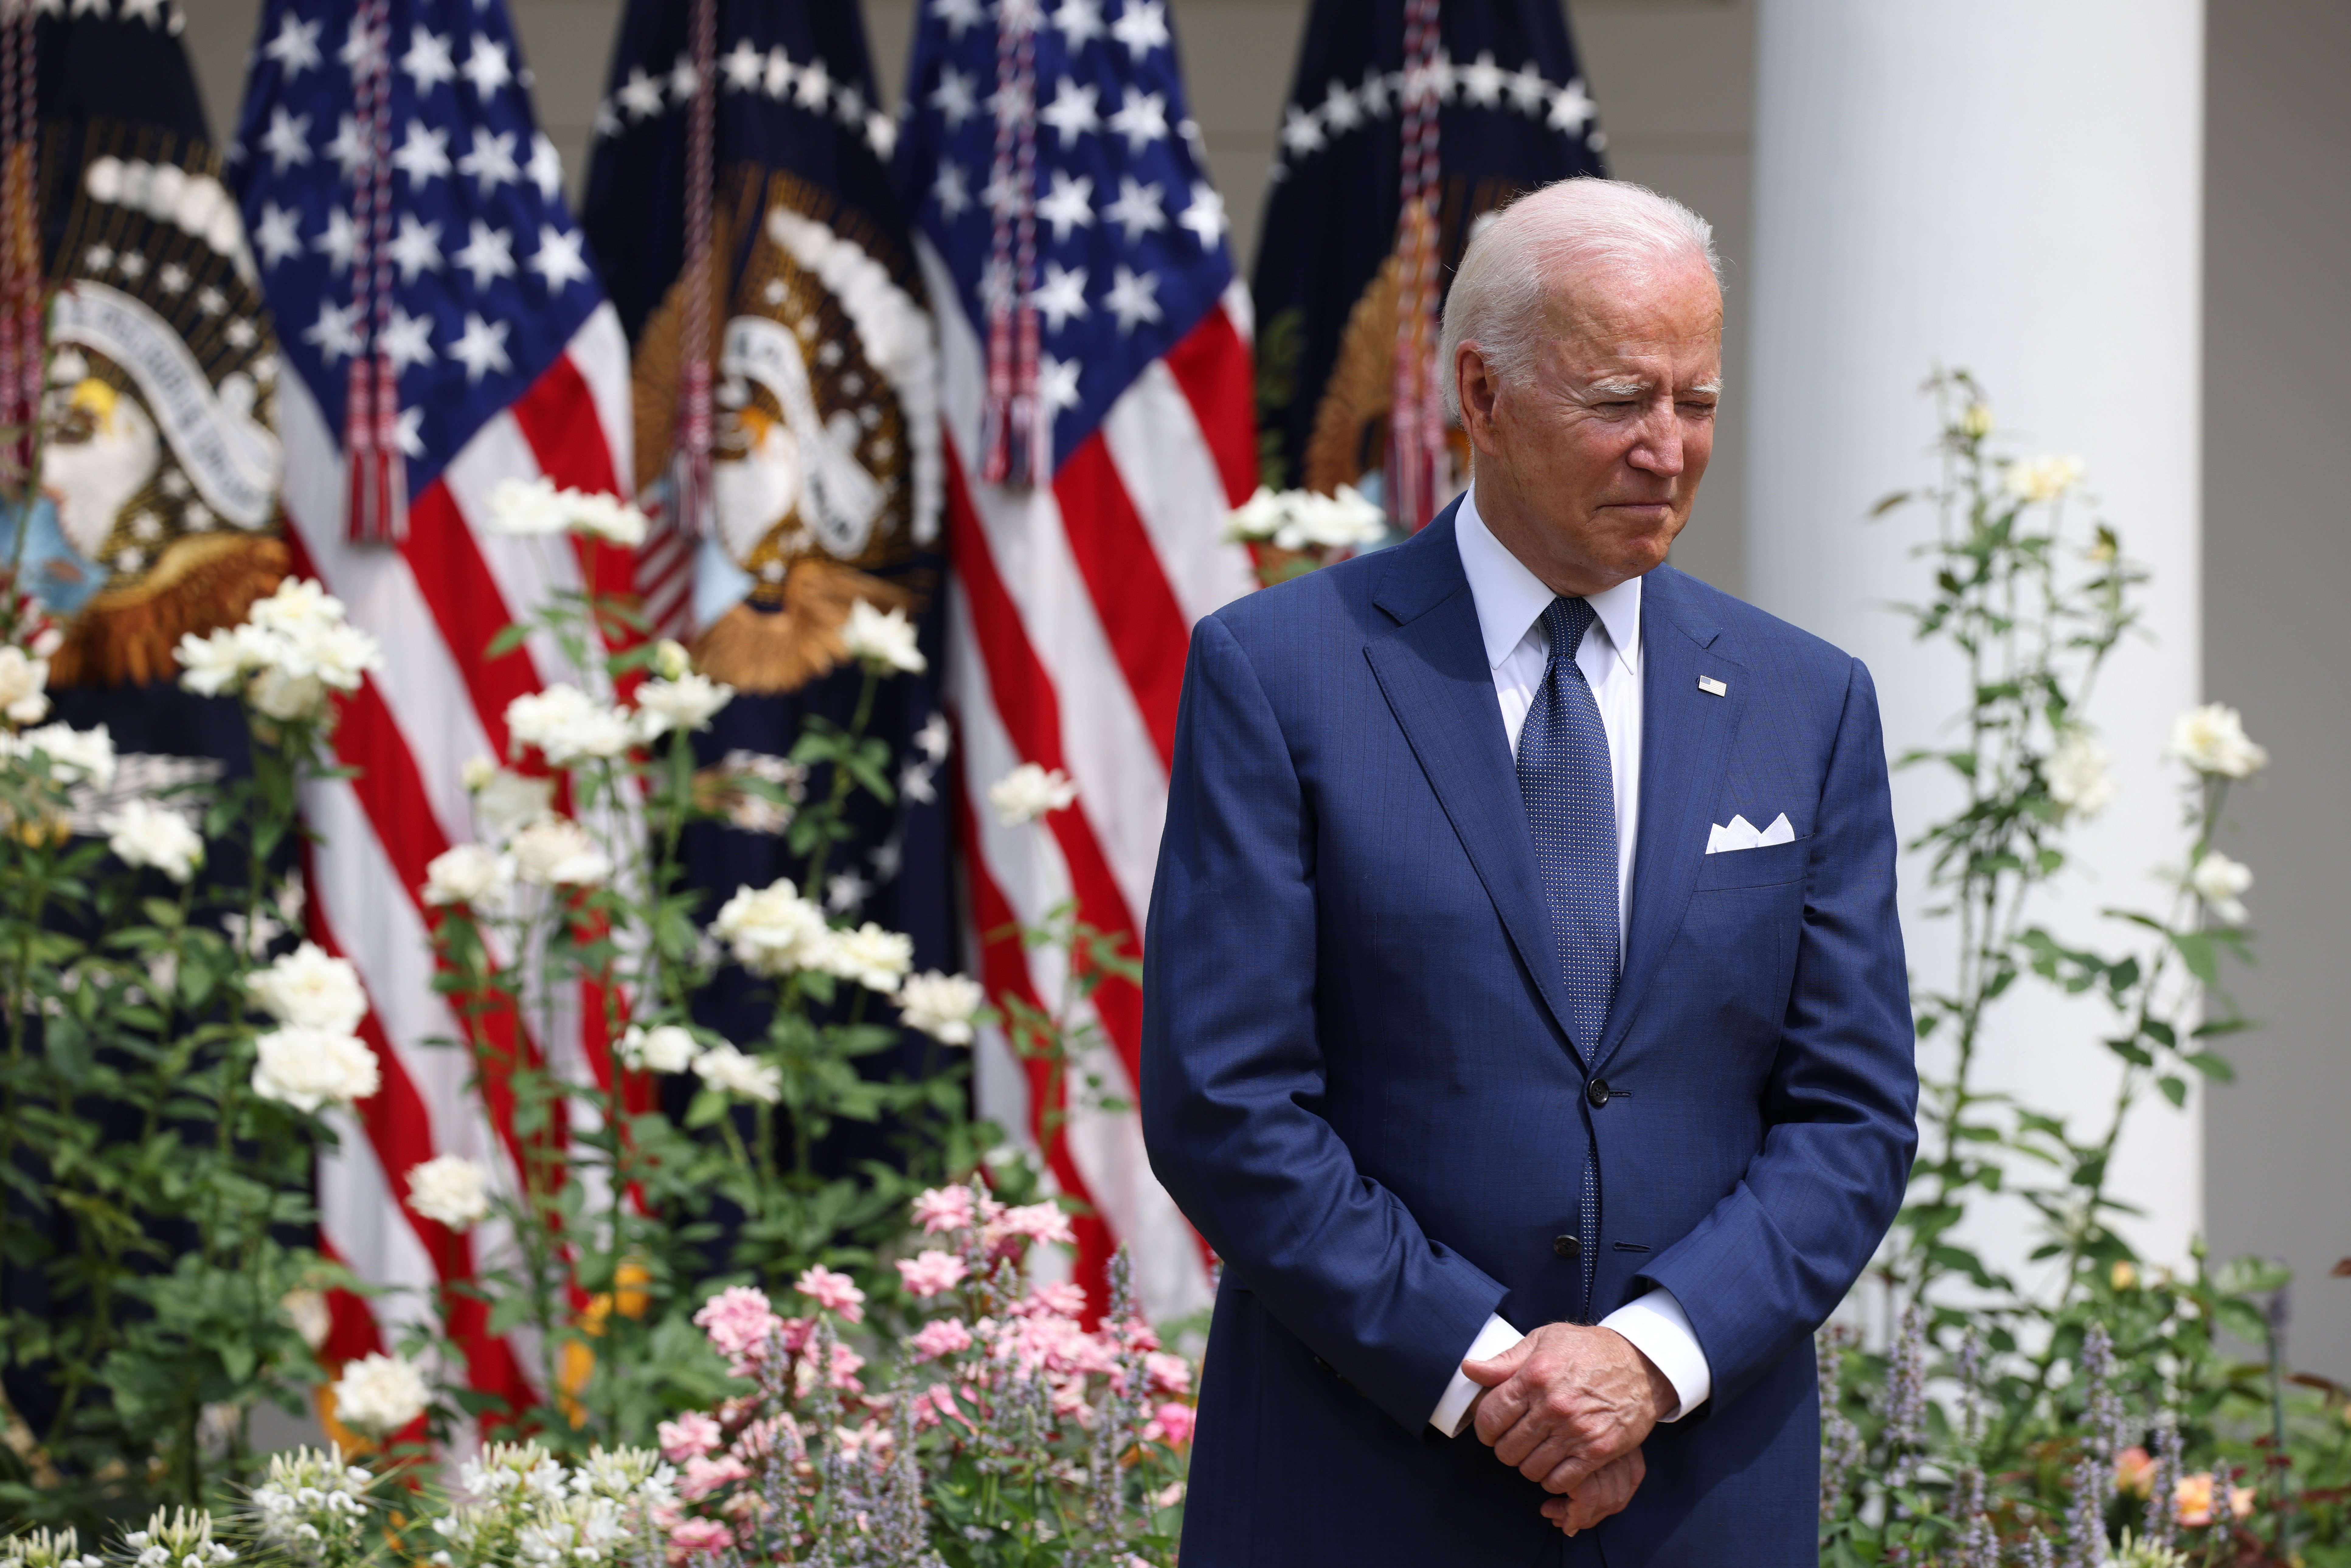 U.S. President Joe Biden listens as Vice President Kamala Harris delivers remarks in the Rose Garden of the White House on July 26, 2021 in Washington, DC. (Photo by Anna Moneymaker/Getty Images)